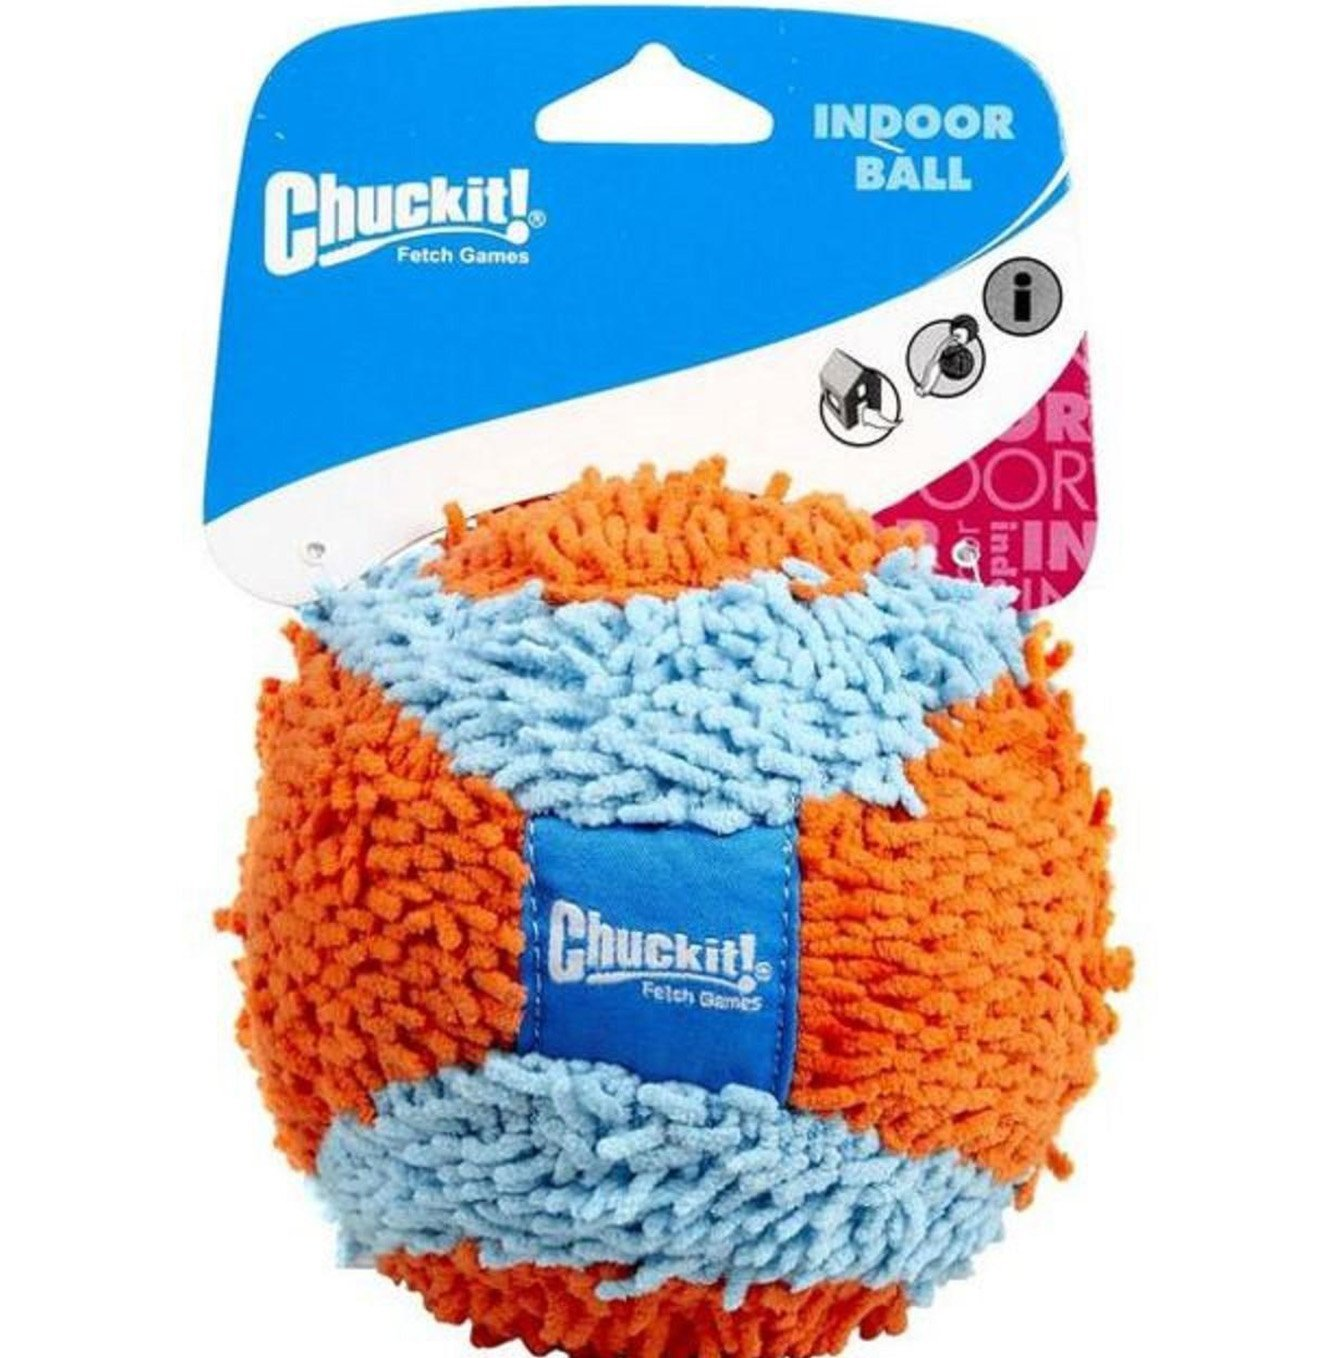 Chuckit Indoor Play Ball 11cm